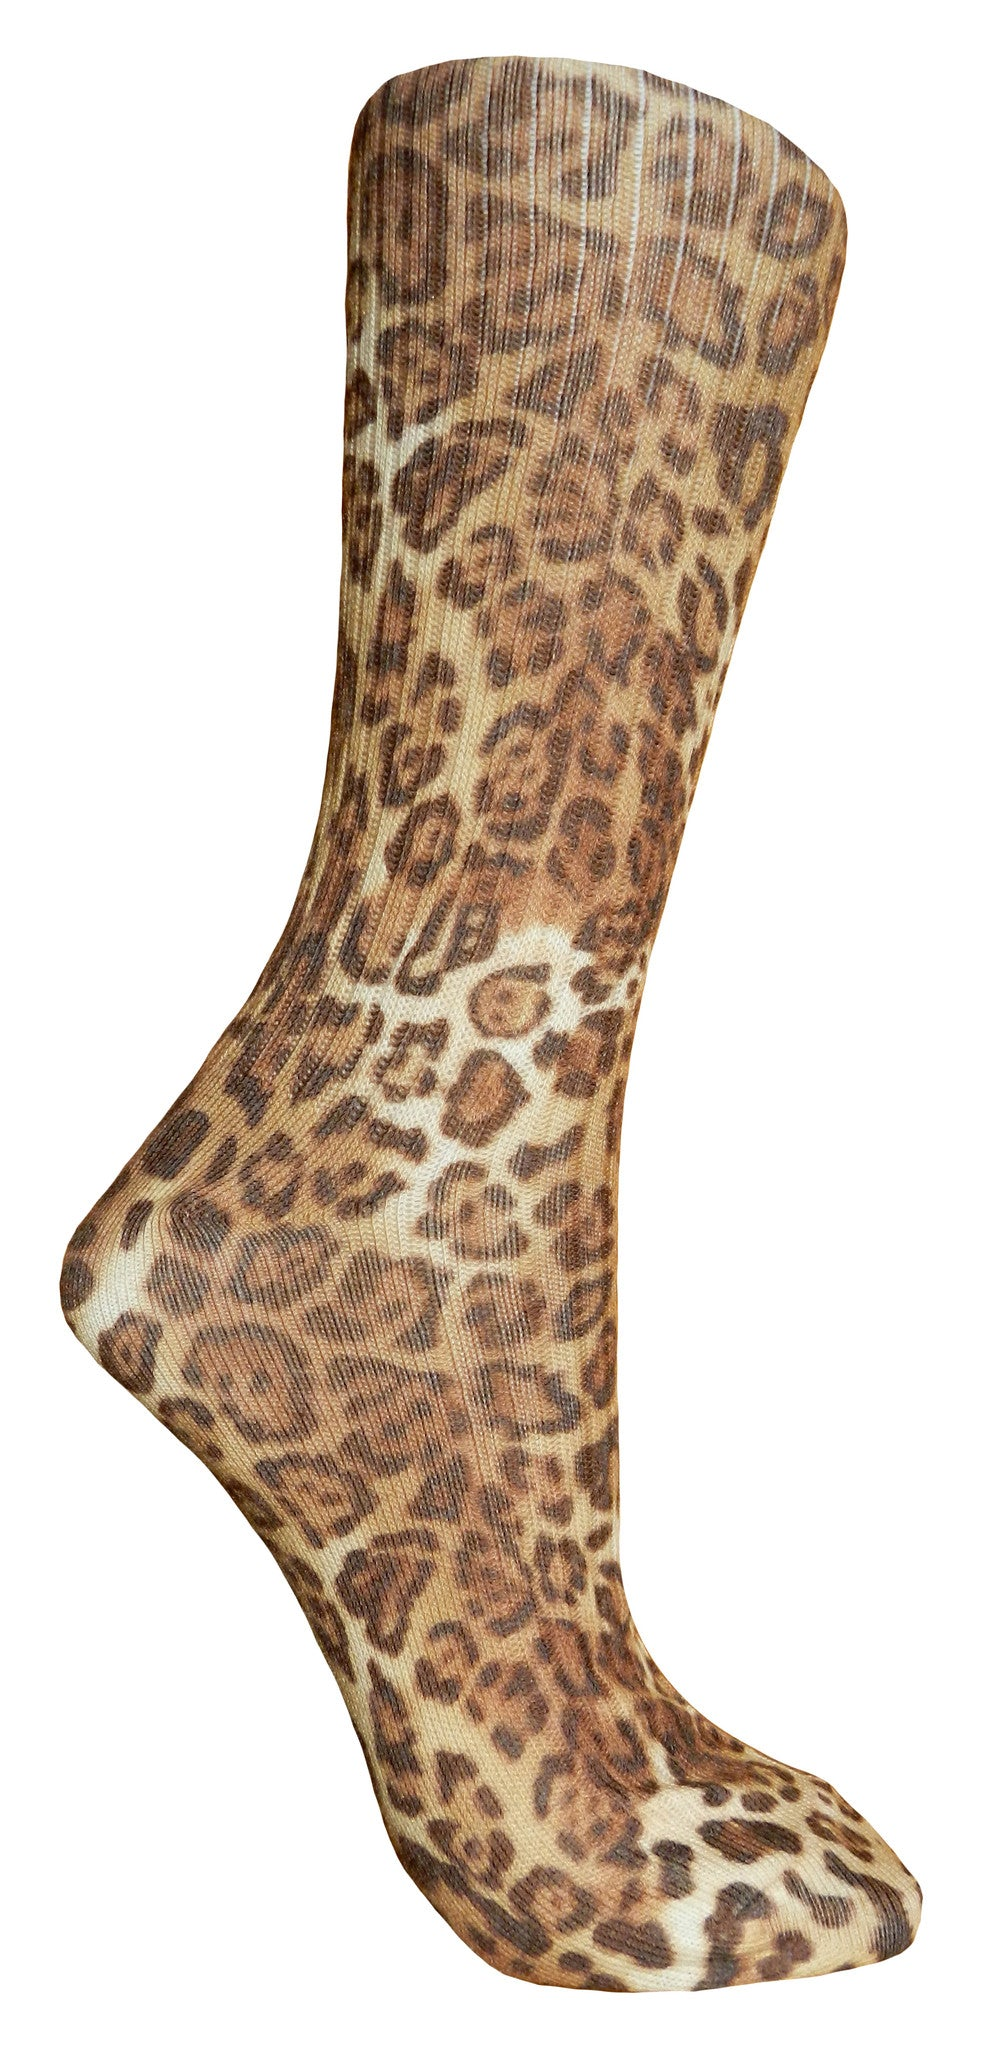 Soxtrot Cotton Sox - Caveman